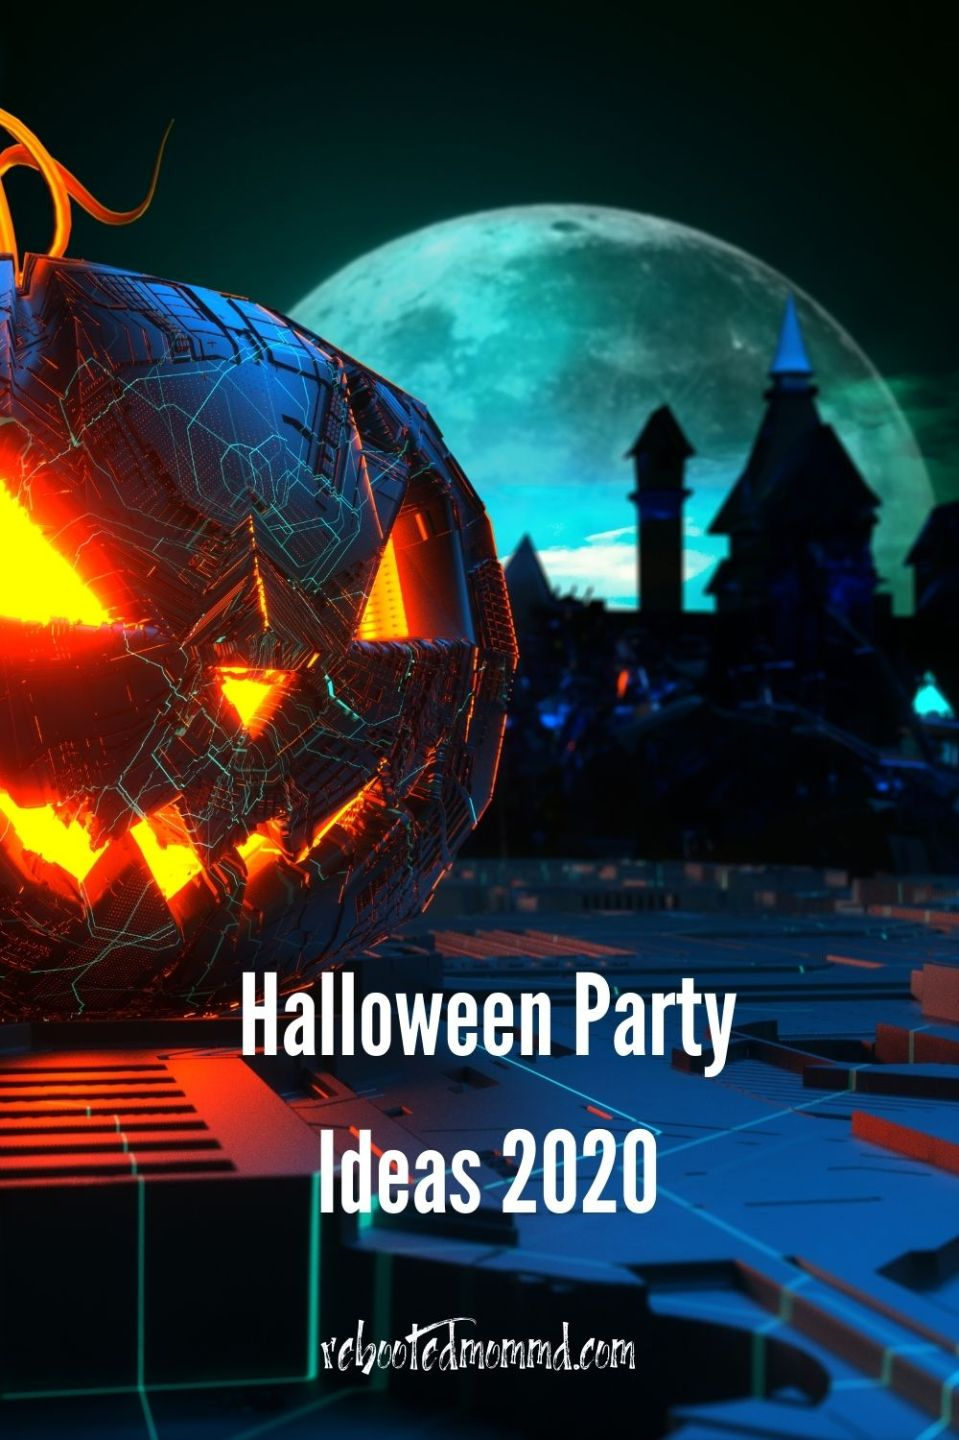 How to Have a Halloween Party 2020